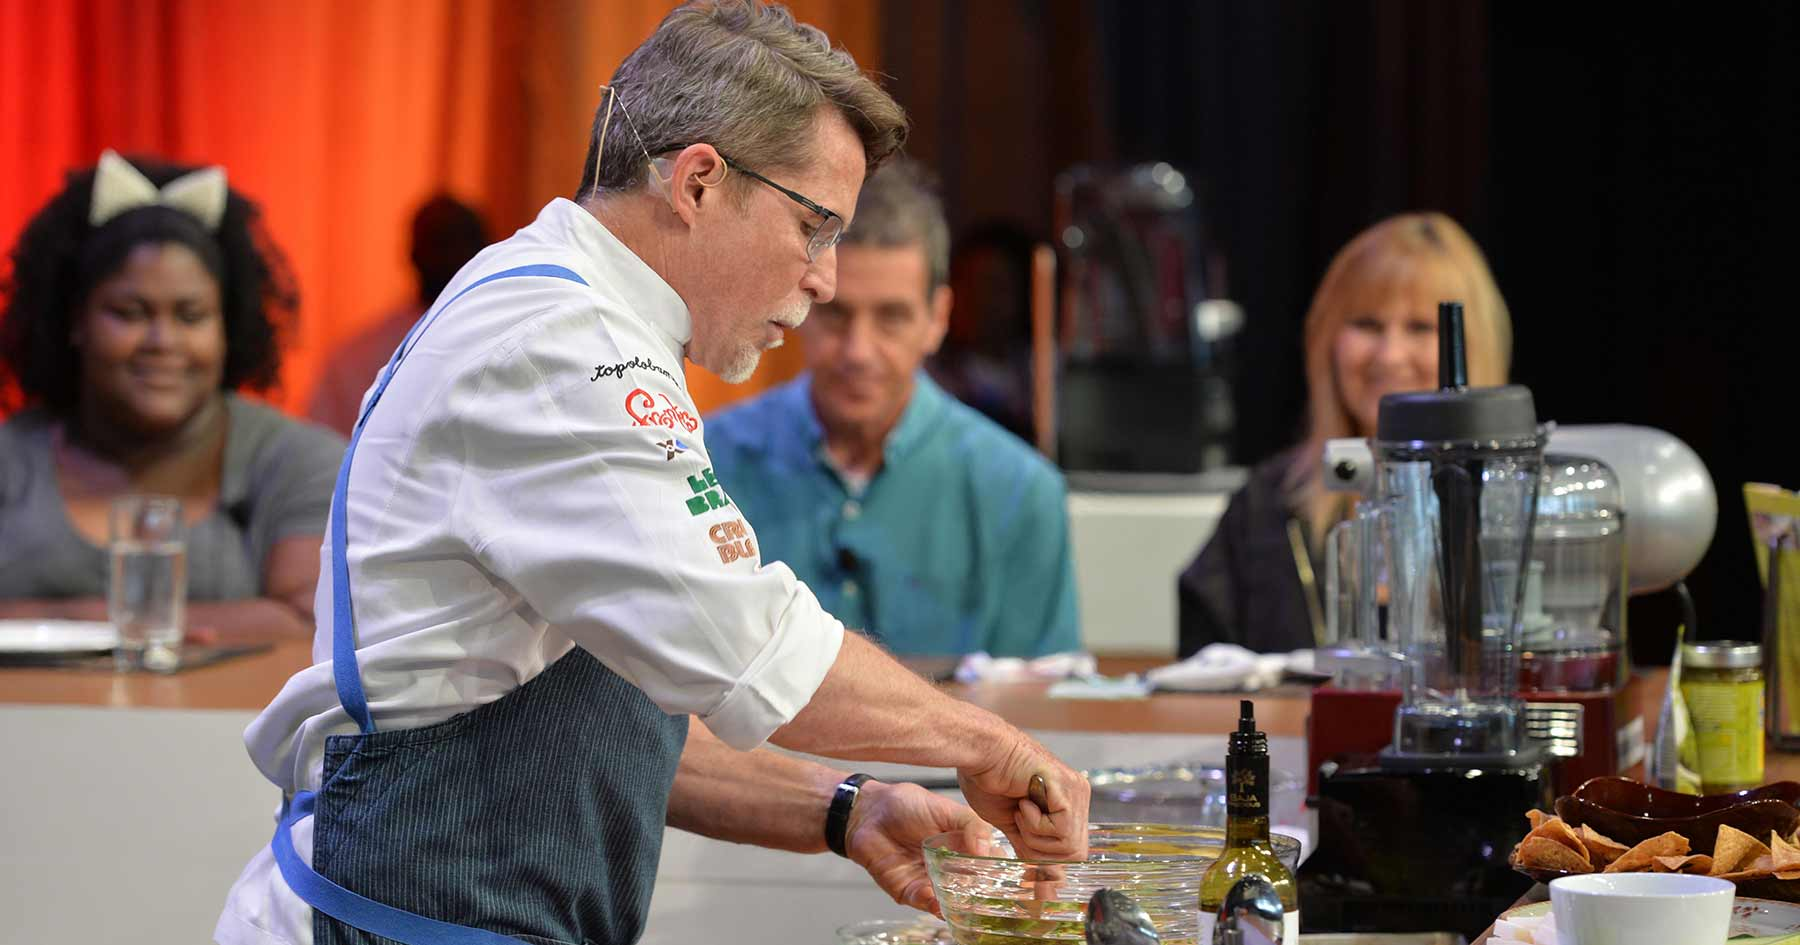 Rick Bayless hosts cooking demonstration at the National Restaurant Association Show.